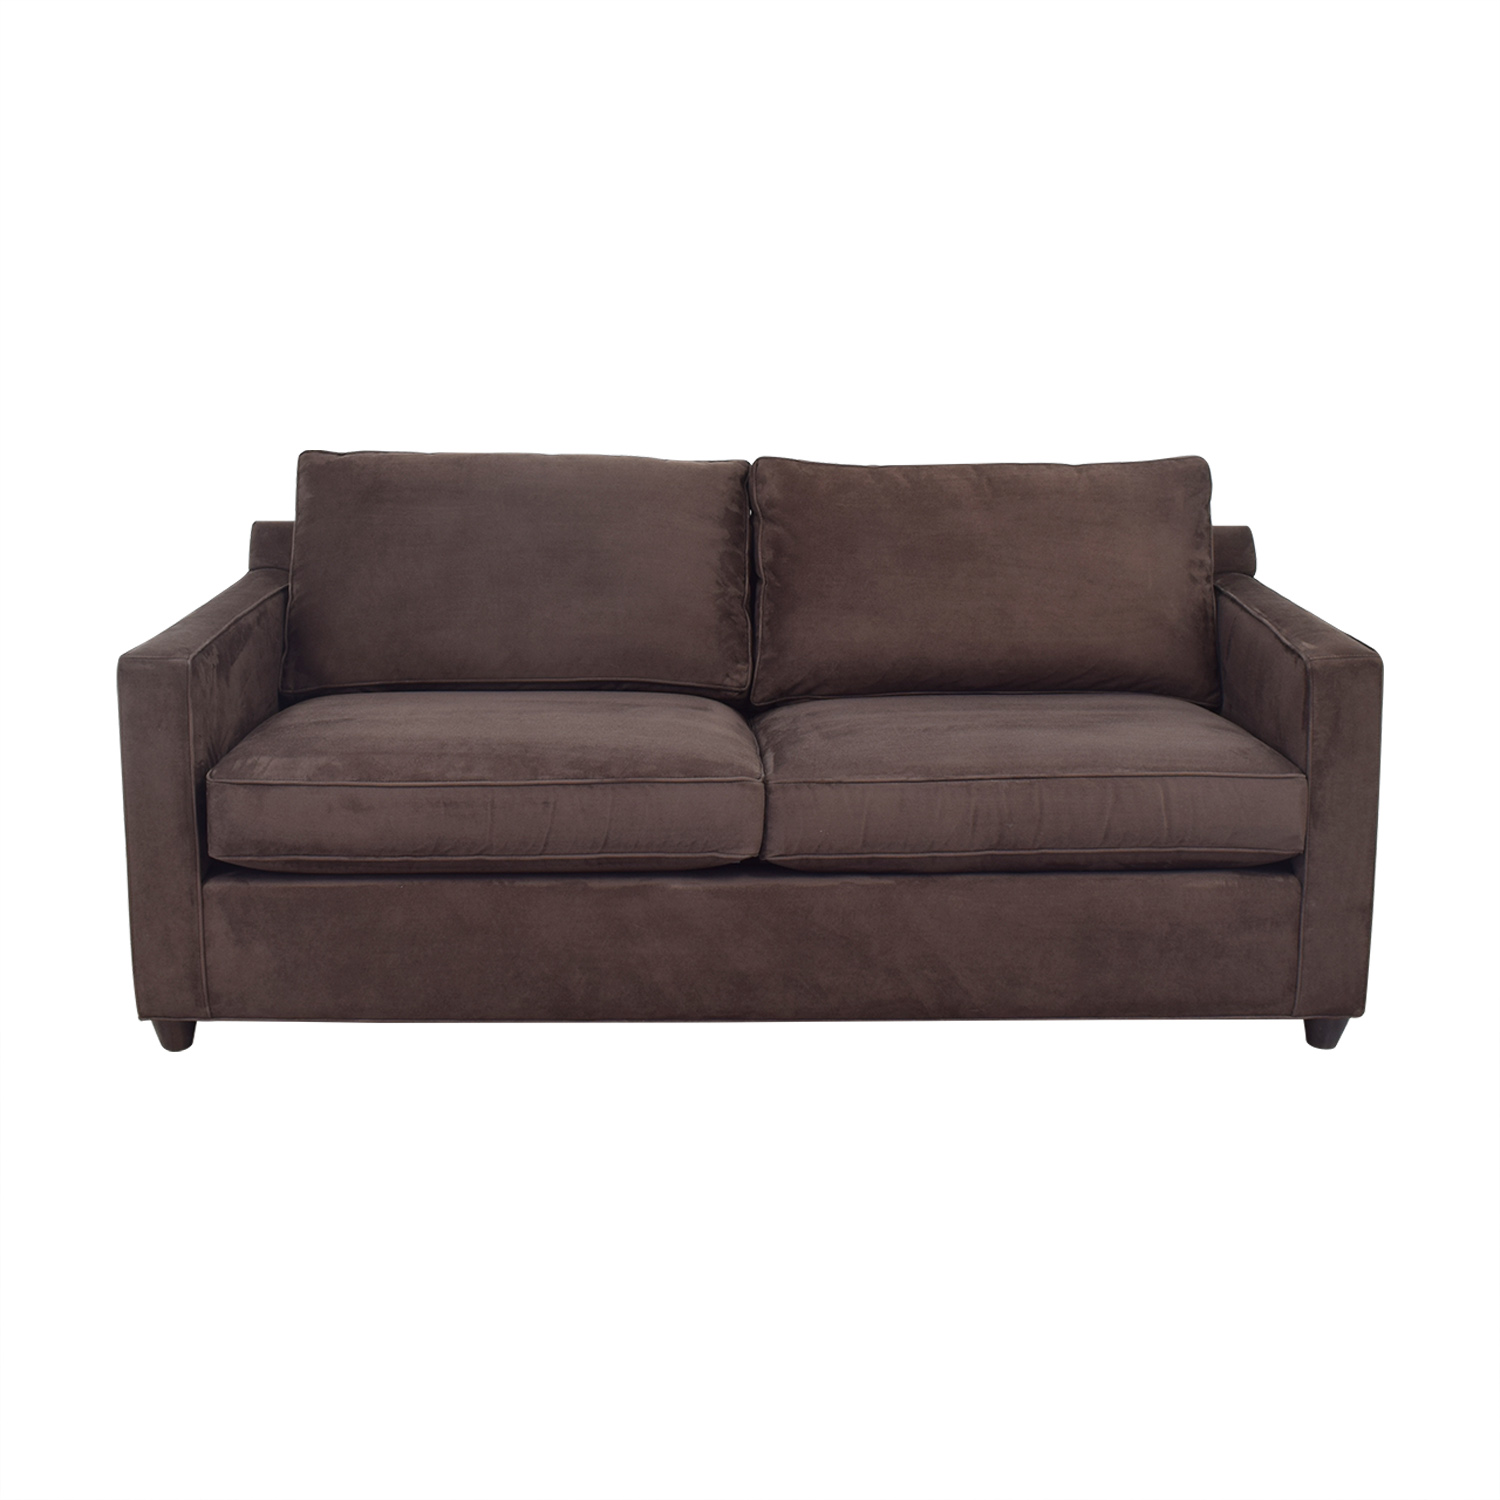 Crate & Barrel Crate & Barrel Two Cushion Sofa pa